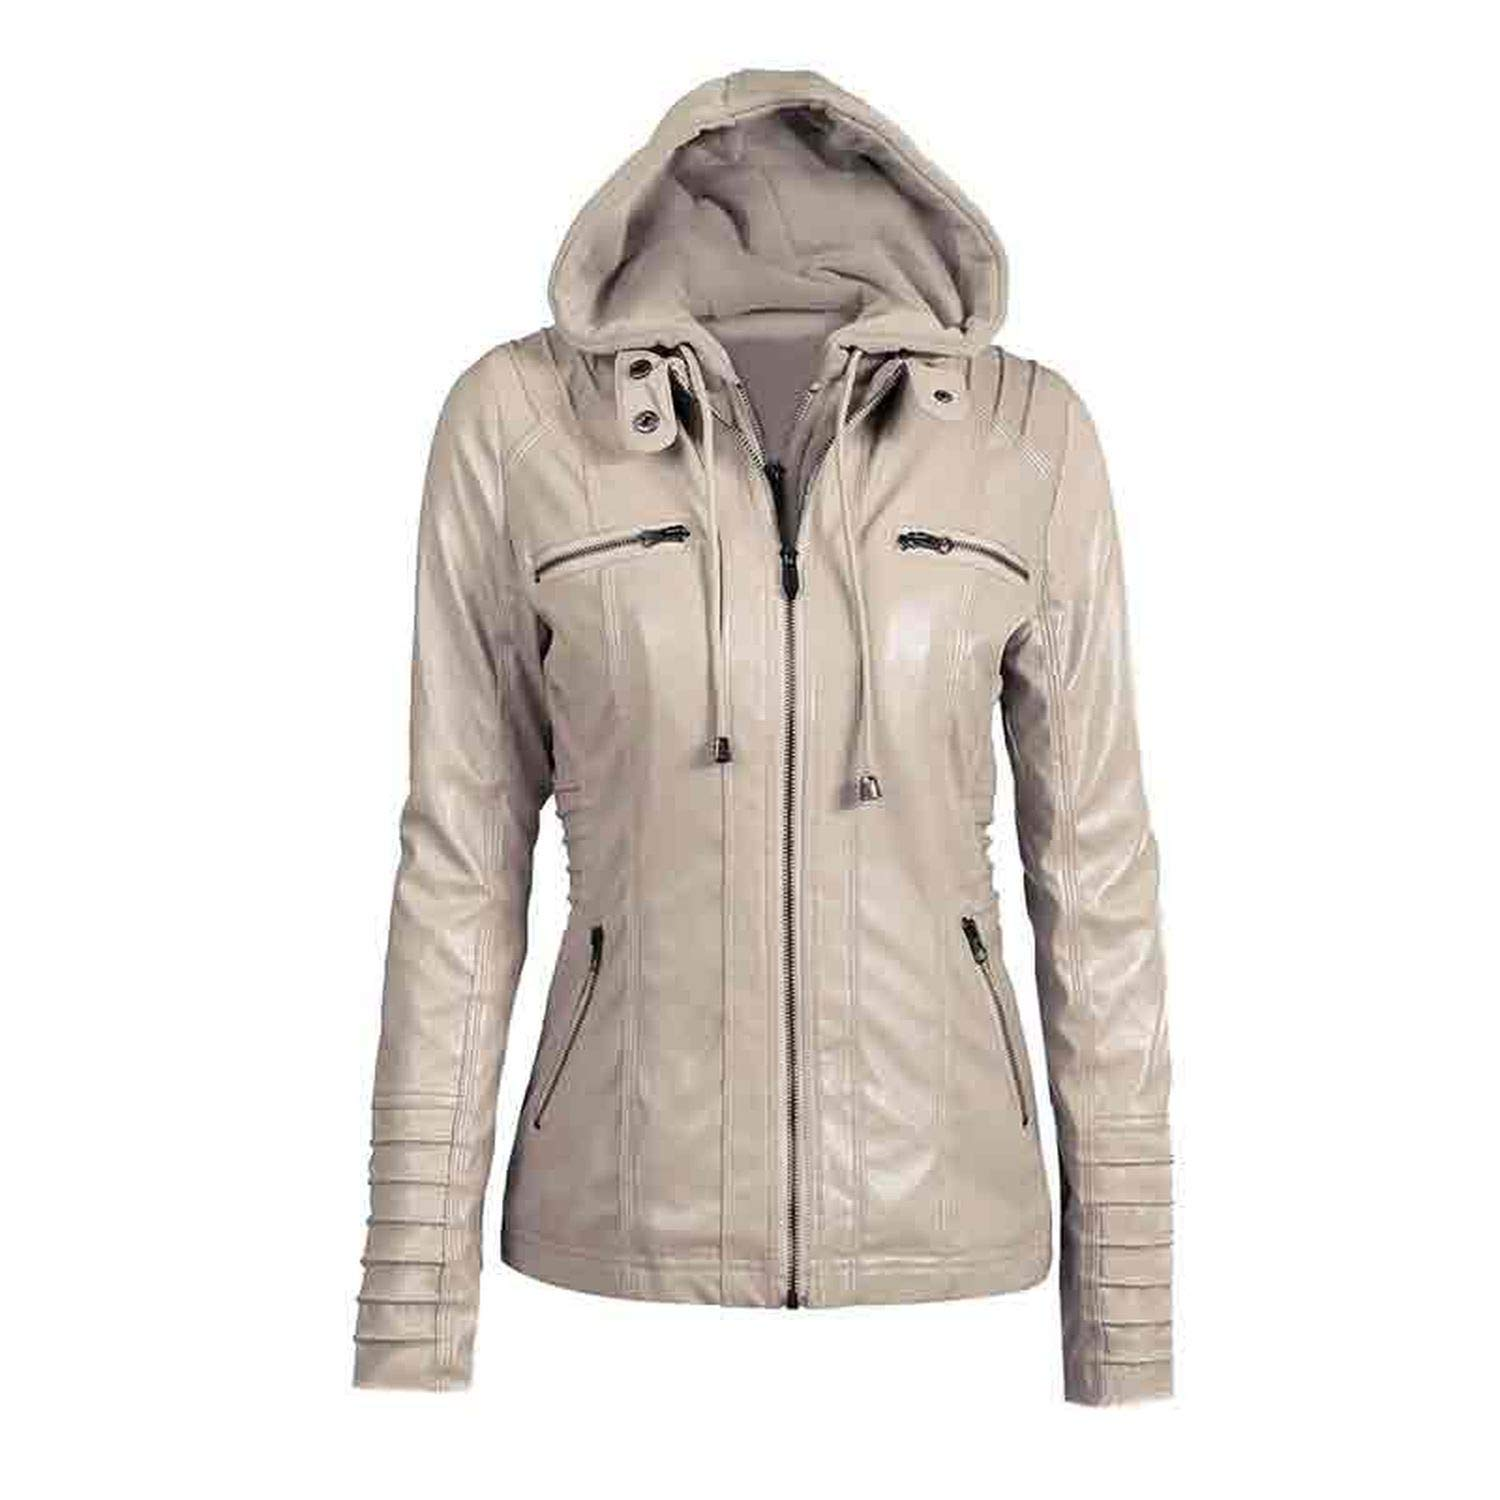 Light Apricot Be fearless Winter Slim Zipper Hooded Coat Female Warm Casual Outerwear Solid 2XL Fall Leather Jacket Coats